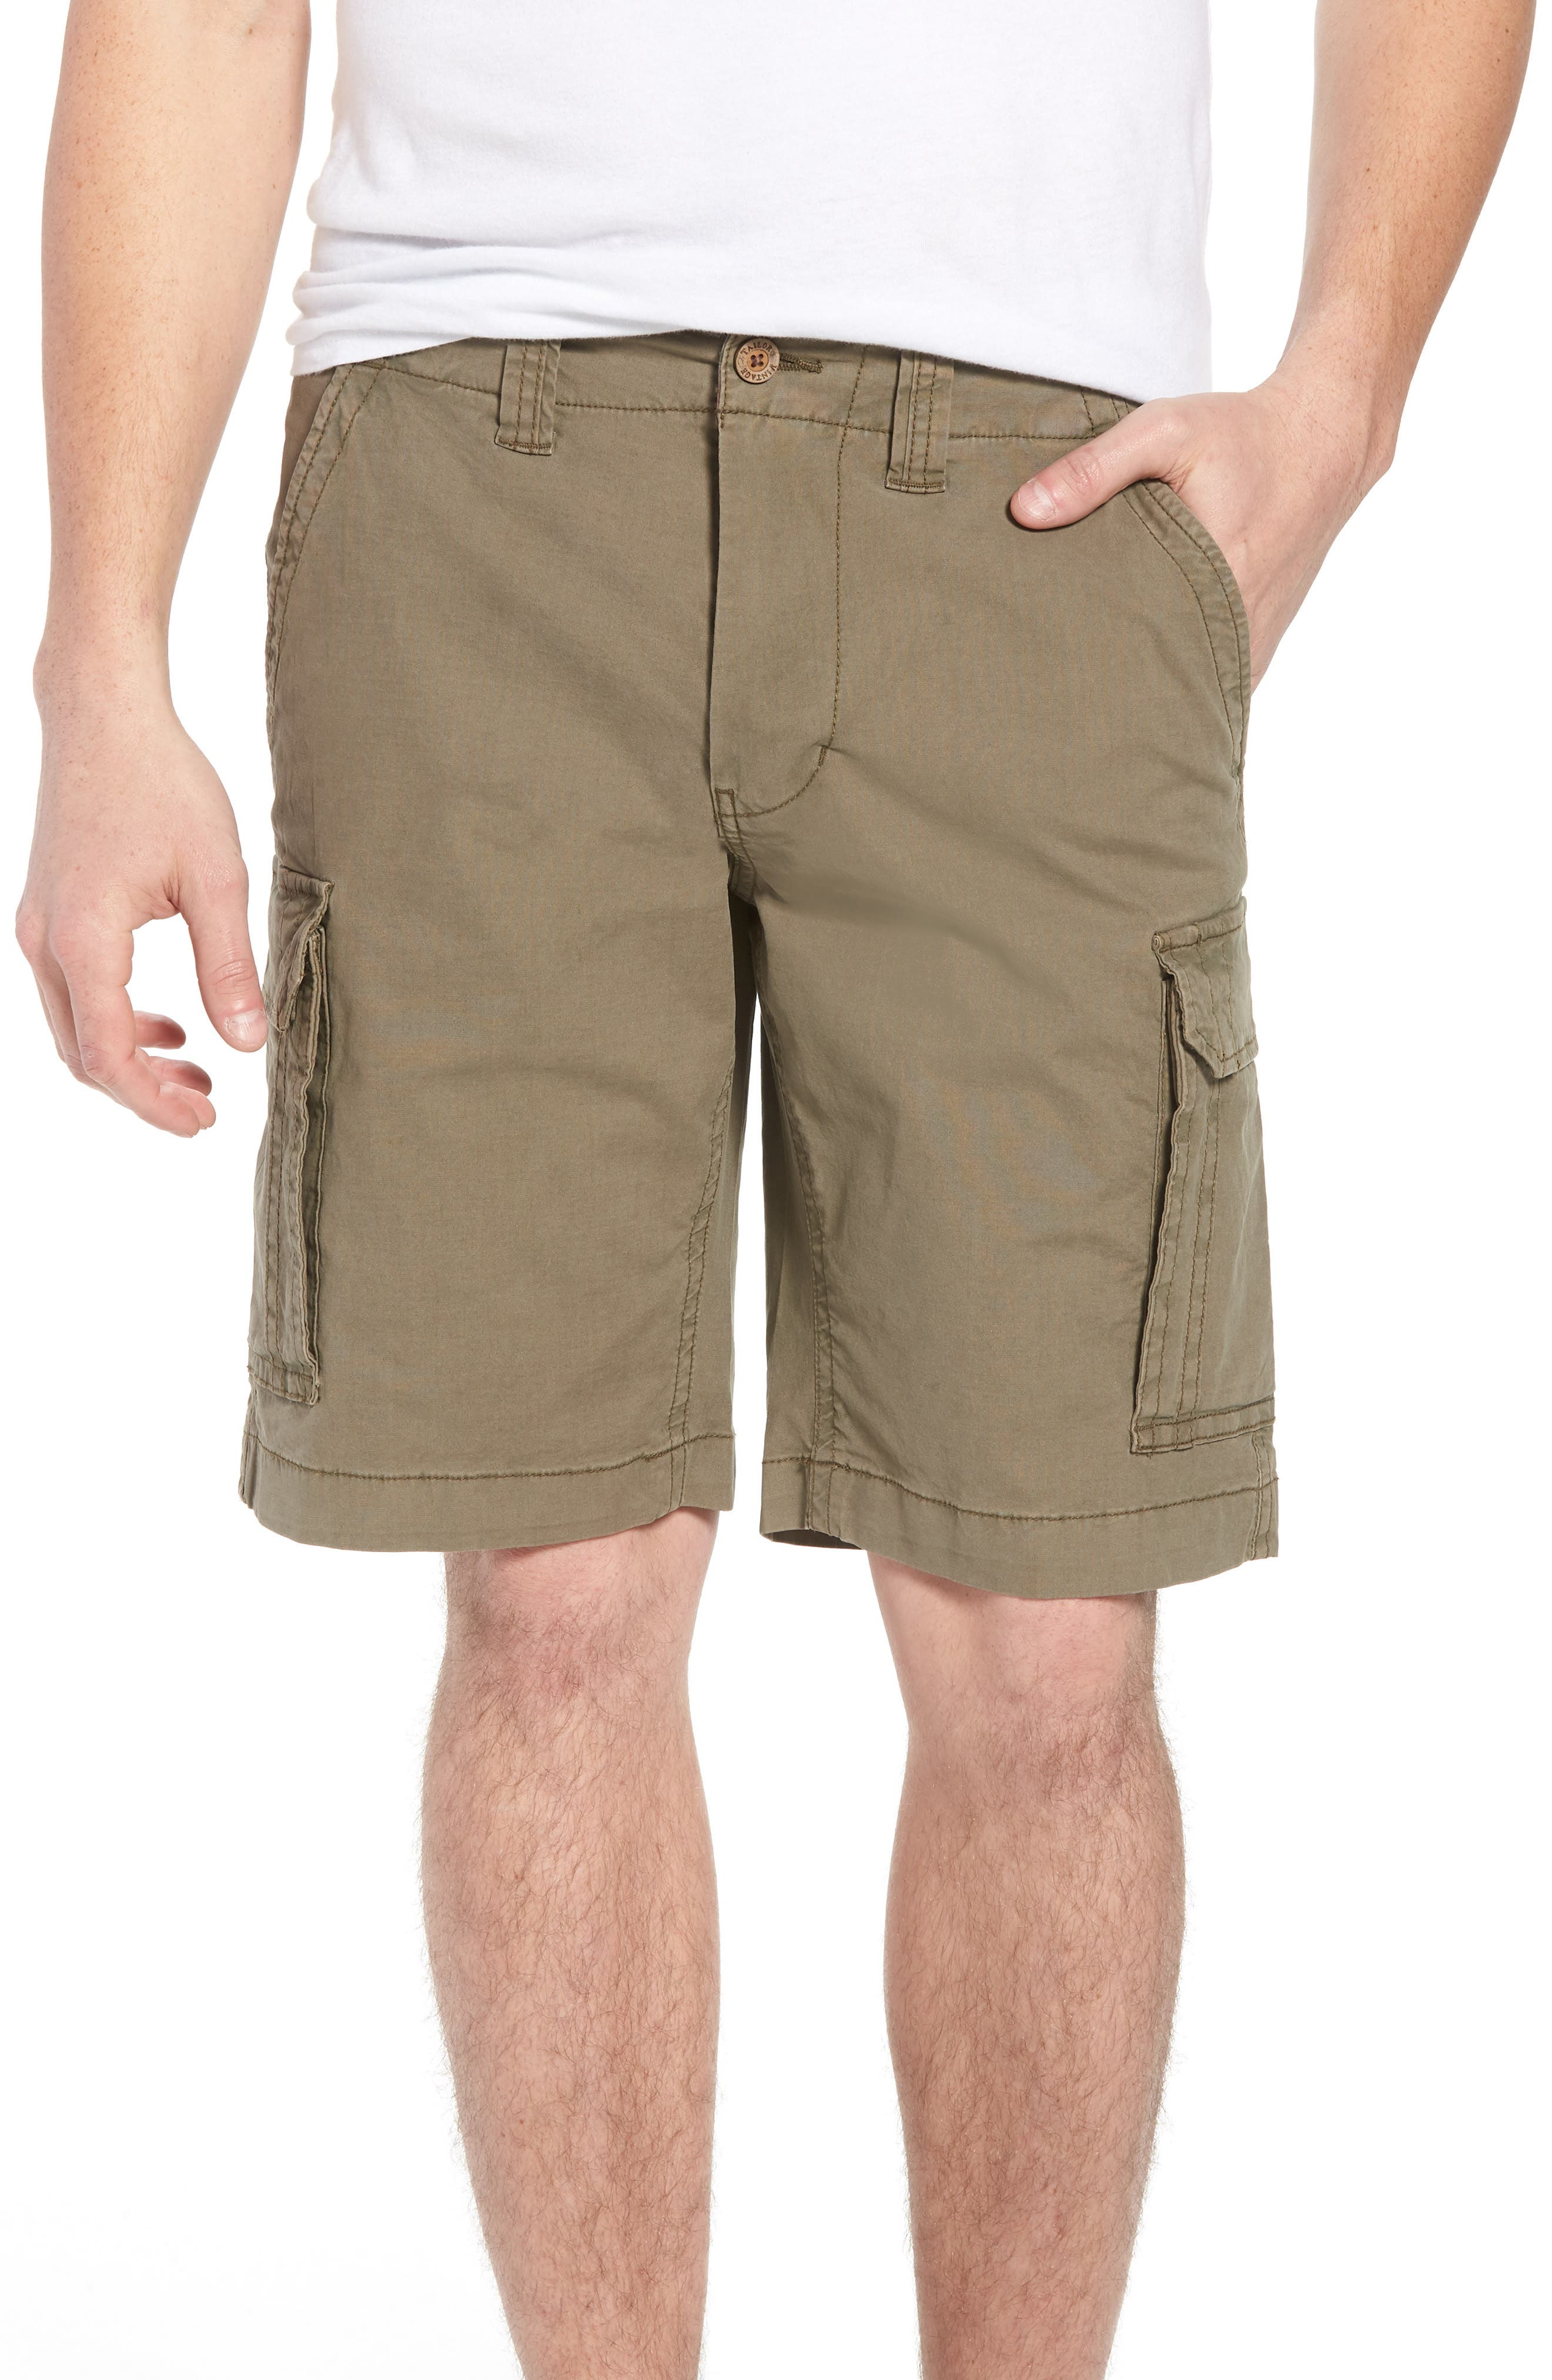 Stretch Canvas Cargo Shorts,                             Main thumbnail 1, color,                             Army